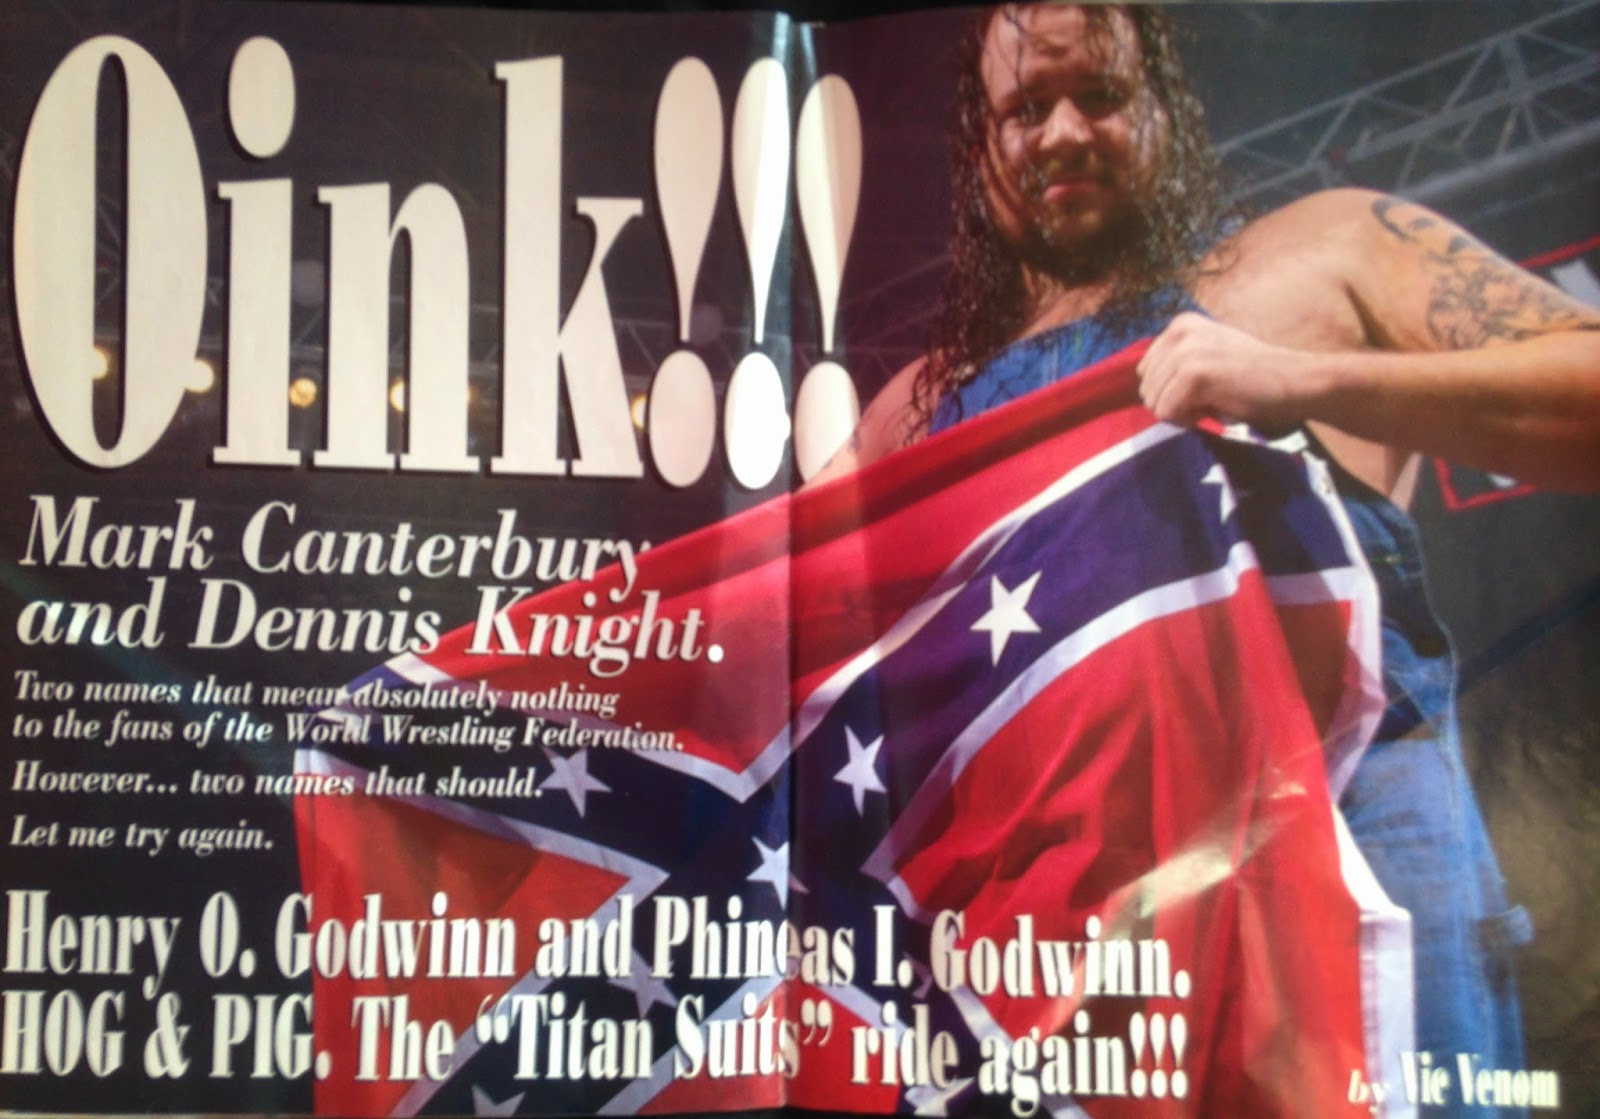 WWE - WWF Raw Magazine - April 1998 - Feature on The Godwins